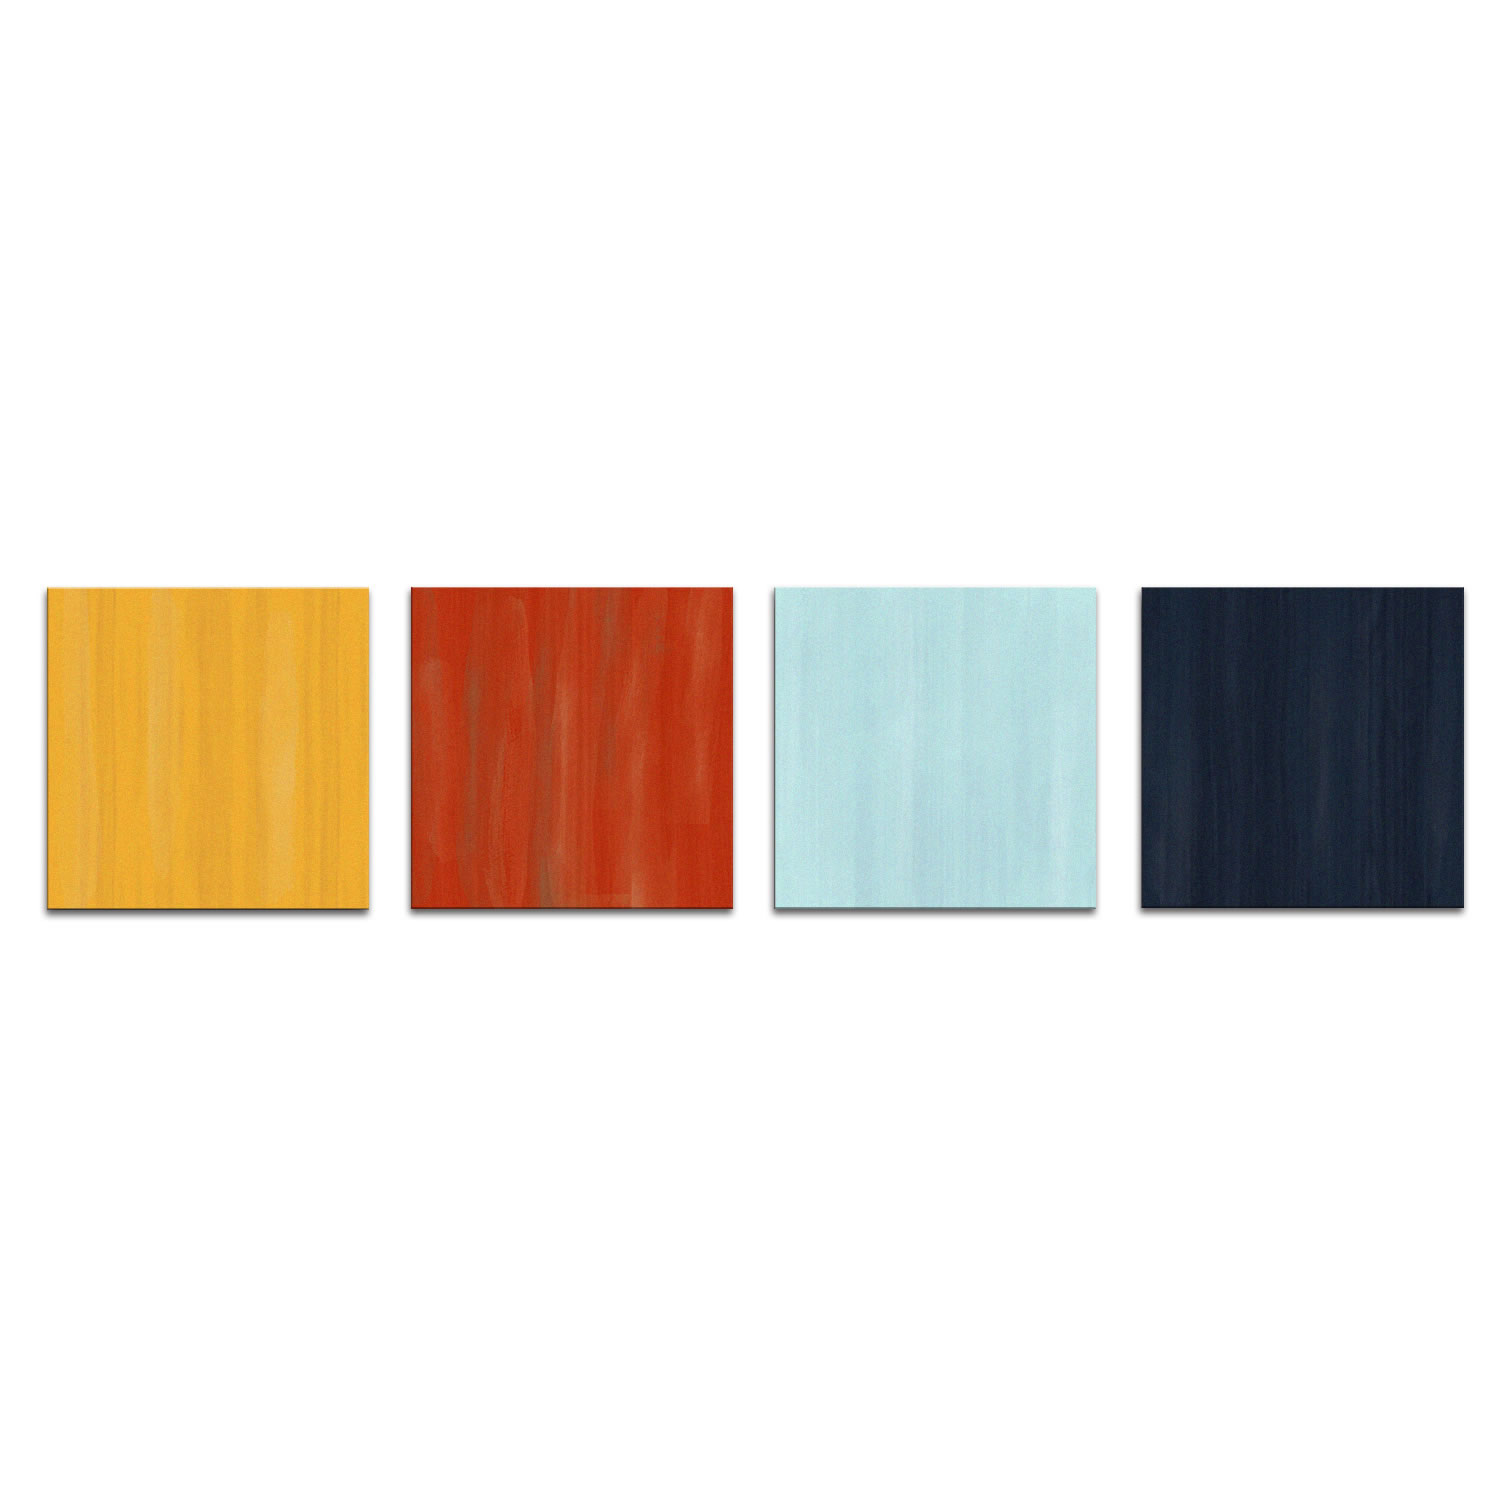 Hot and Cold - Colorful Contemporary Accents by Elana Reiter